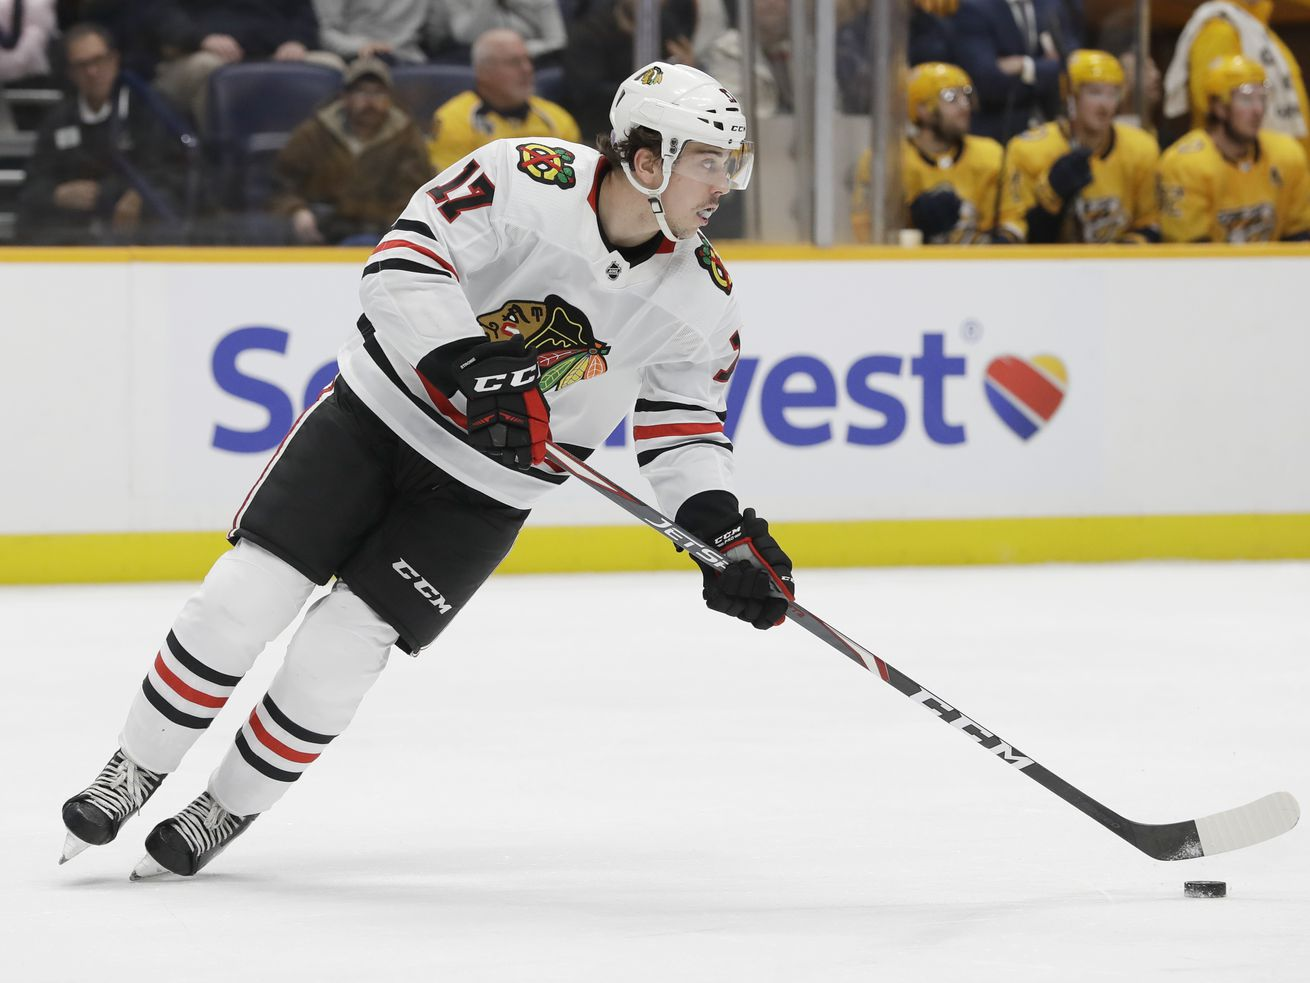 Dylan Strome, a restricted free agent, faces crucial moment in his Blackhawks tenure